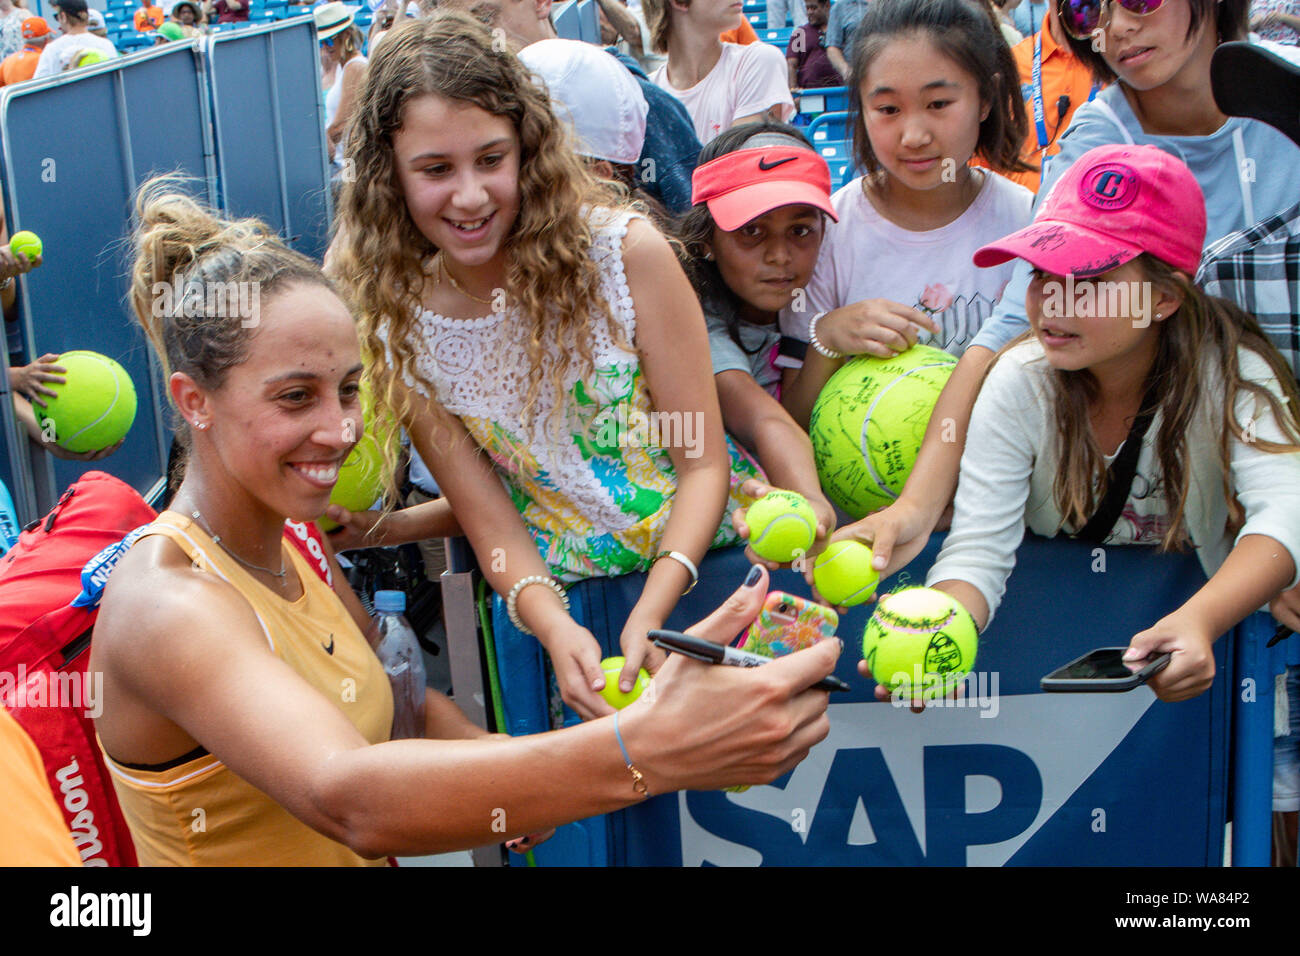 August 18, 2019, Mason, Ohio, USA: Madison Keys (USA) poses for a selfie with fans after winning the Women's Final of the Western and Southern Open at the Lindner Family Tennis Center, Mason, Oh. (Credit Image: © Scott Stuart/ZUMA Wire) Stock Photo